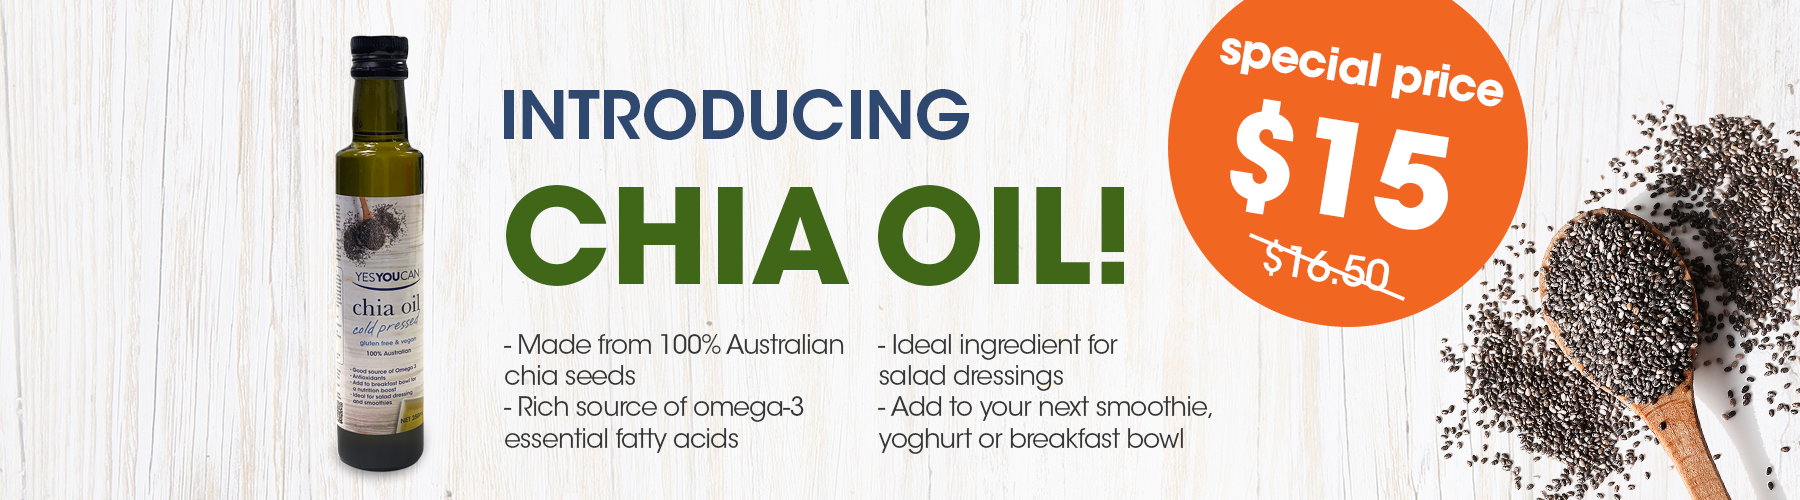 yesyoucan gluten free vegan chia oil seed cold pressed healthy